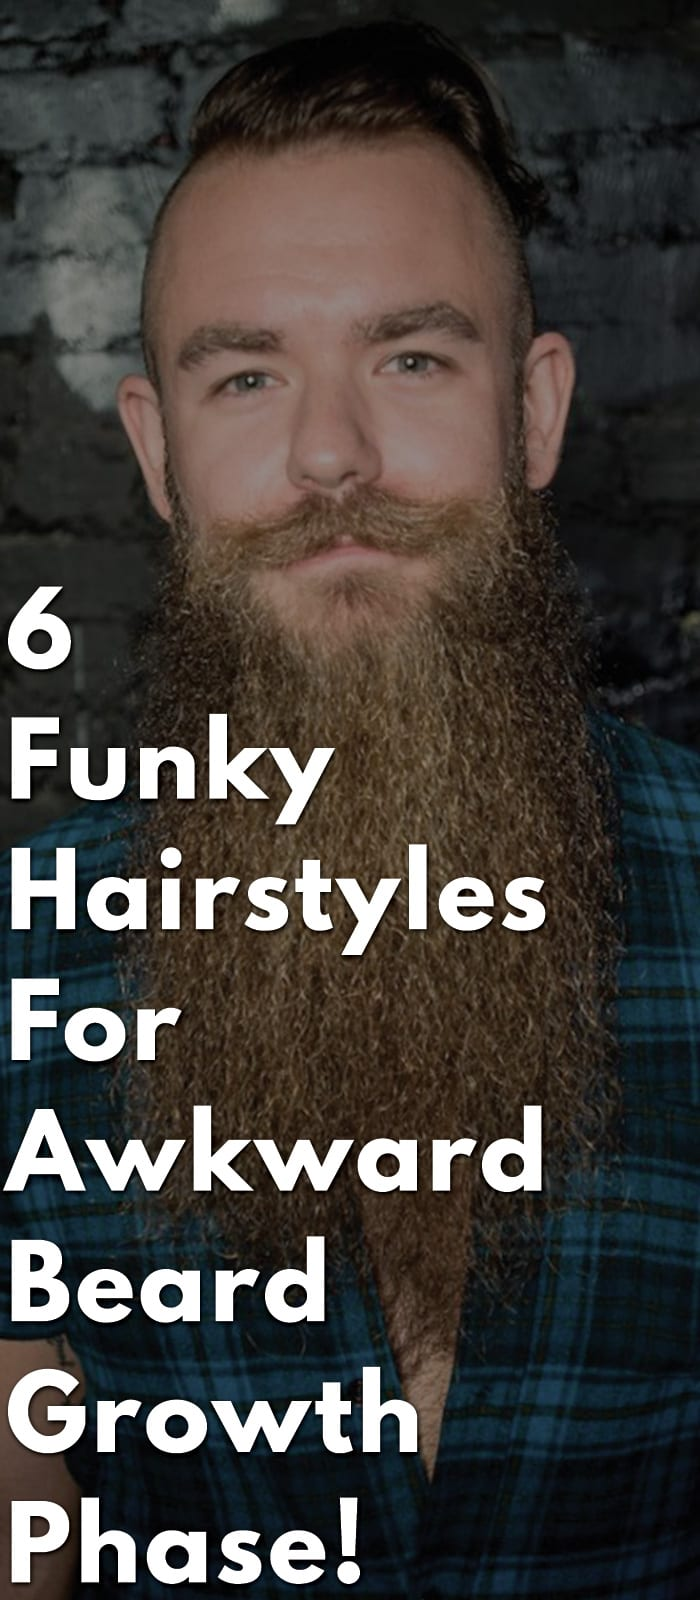 6-Funky-Hairstyles-For-Awkward-Beard-Growth-Phase!